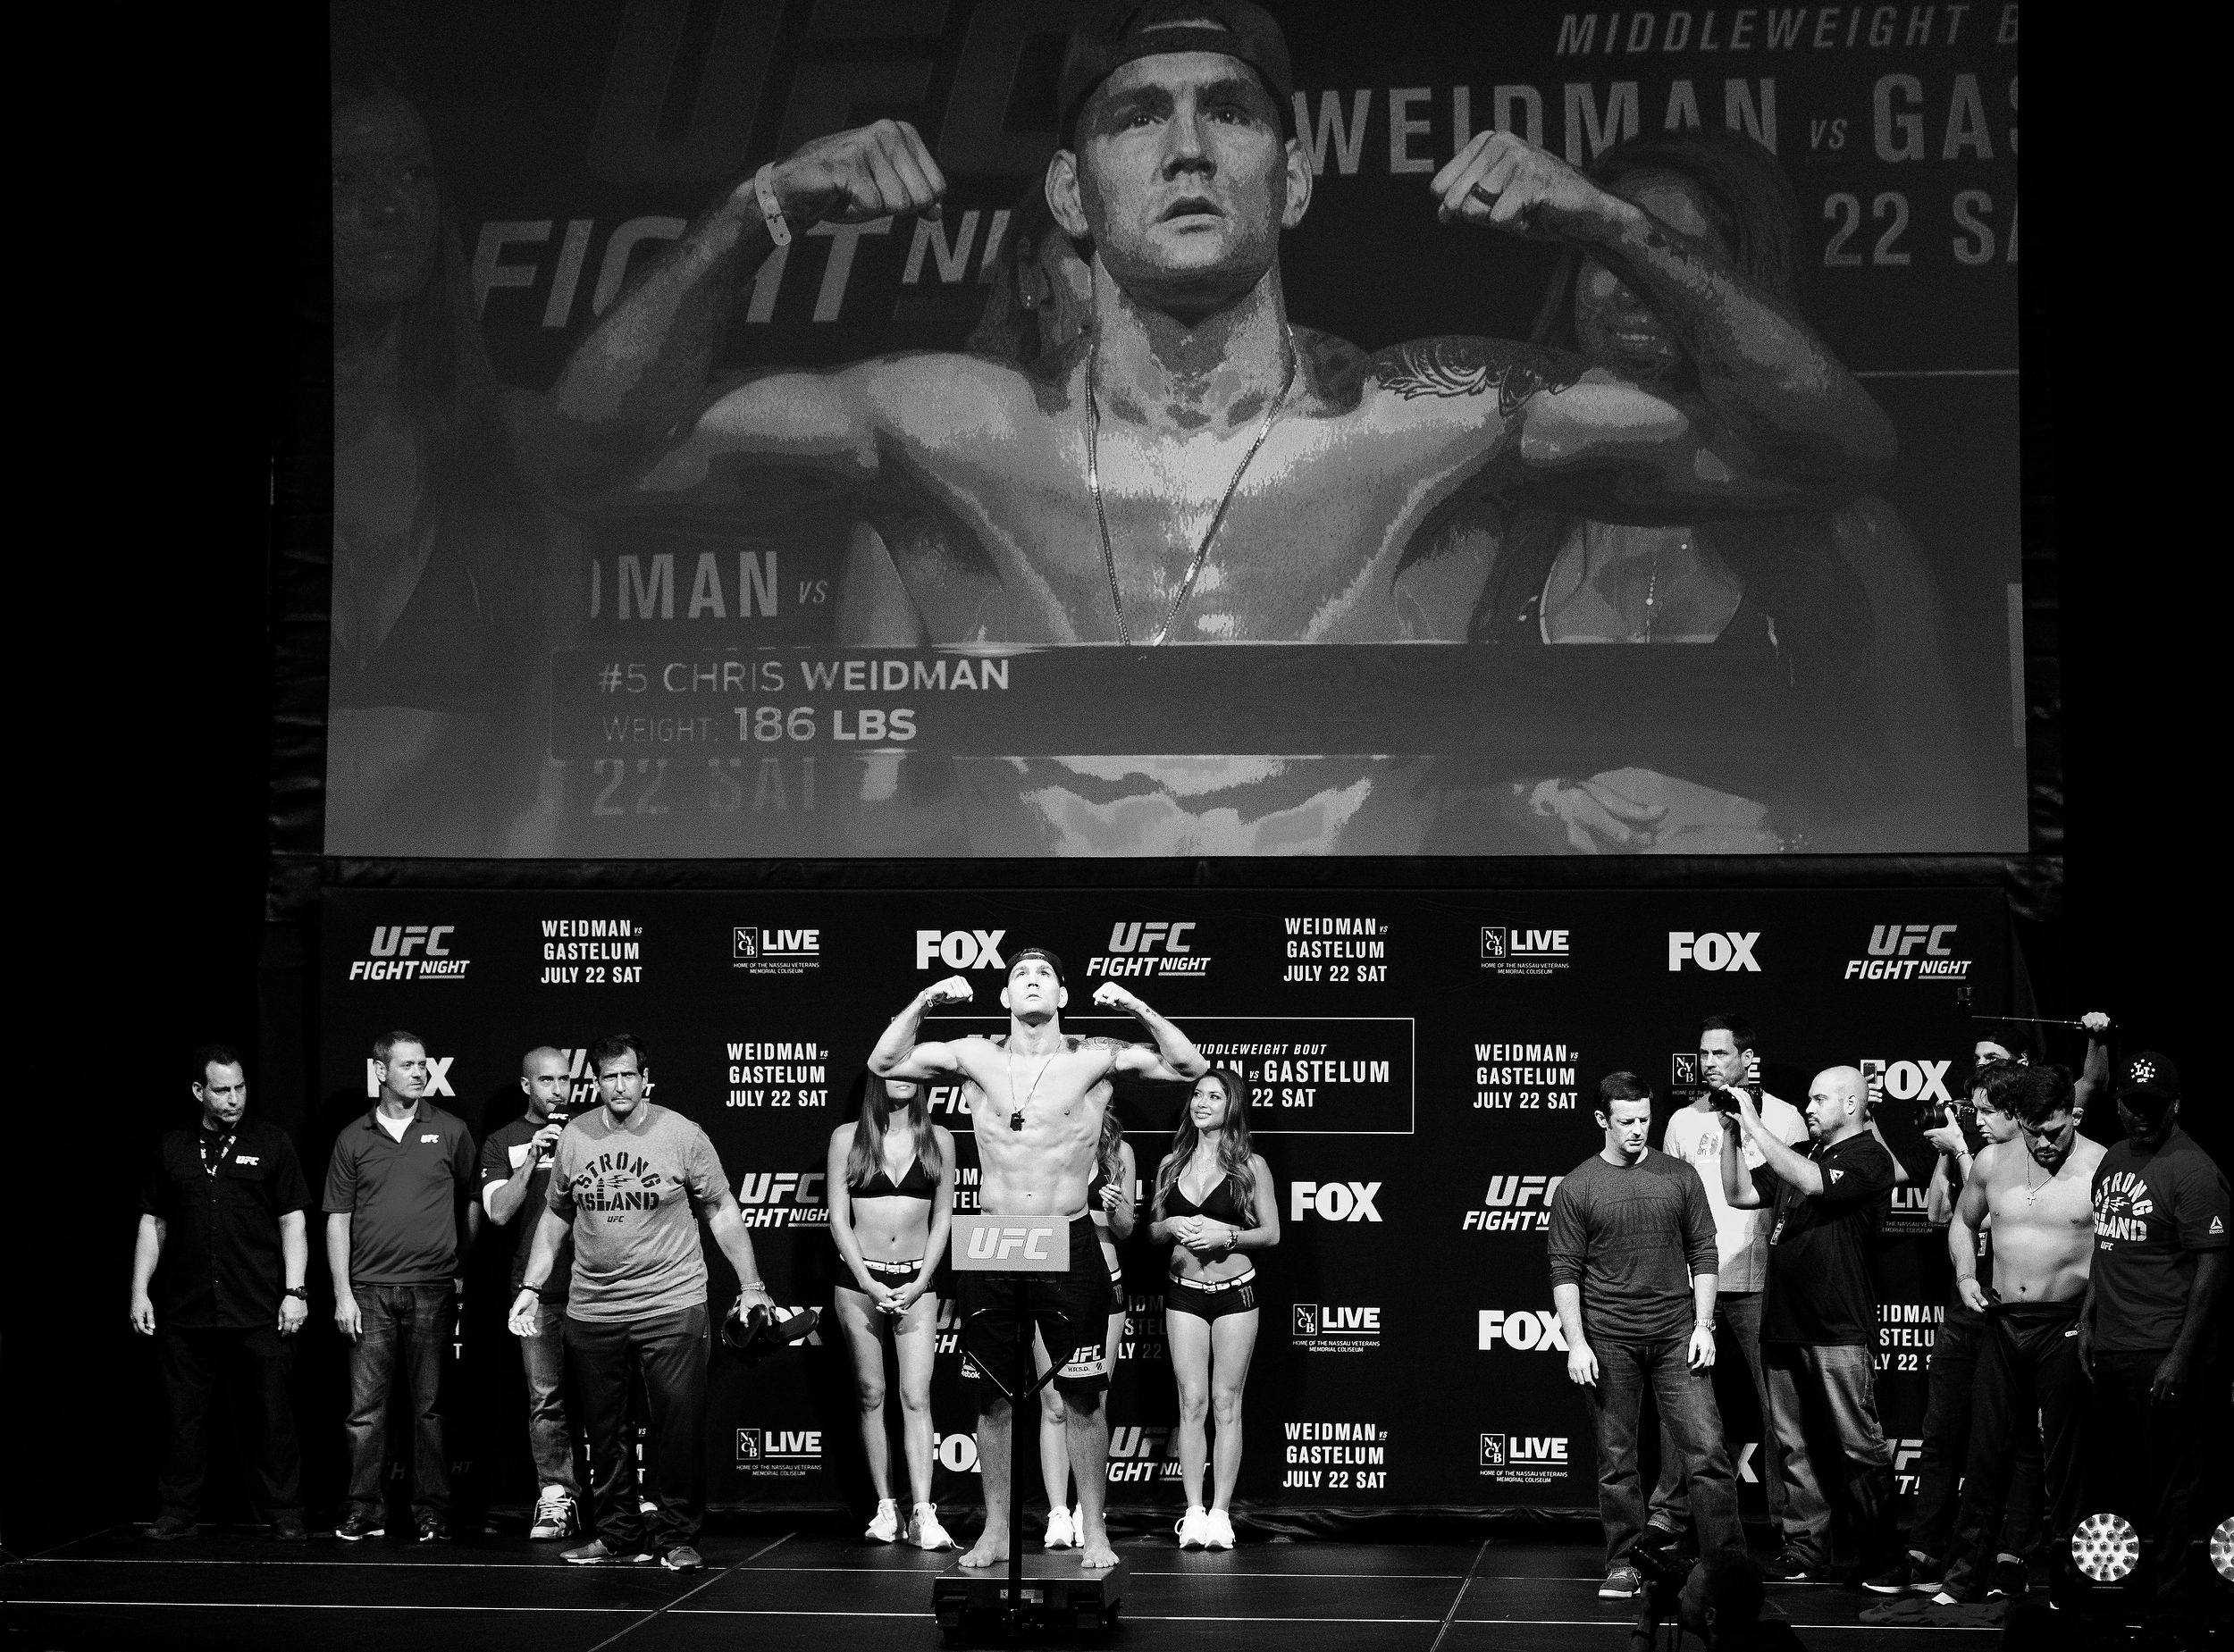 UFC Fighter Chris Weidman at UFC Fight Night Long Island weigh-in on July 21, 2017 in Uniondale, N.Y. (Photo by Bryan Bennett/The Players' Tribune)